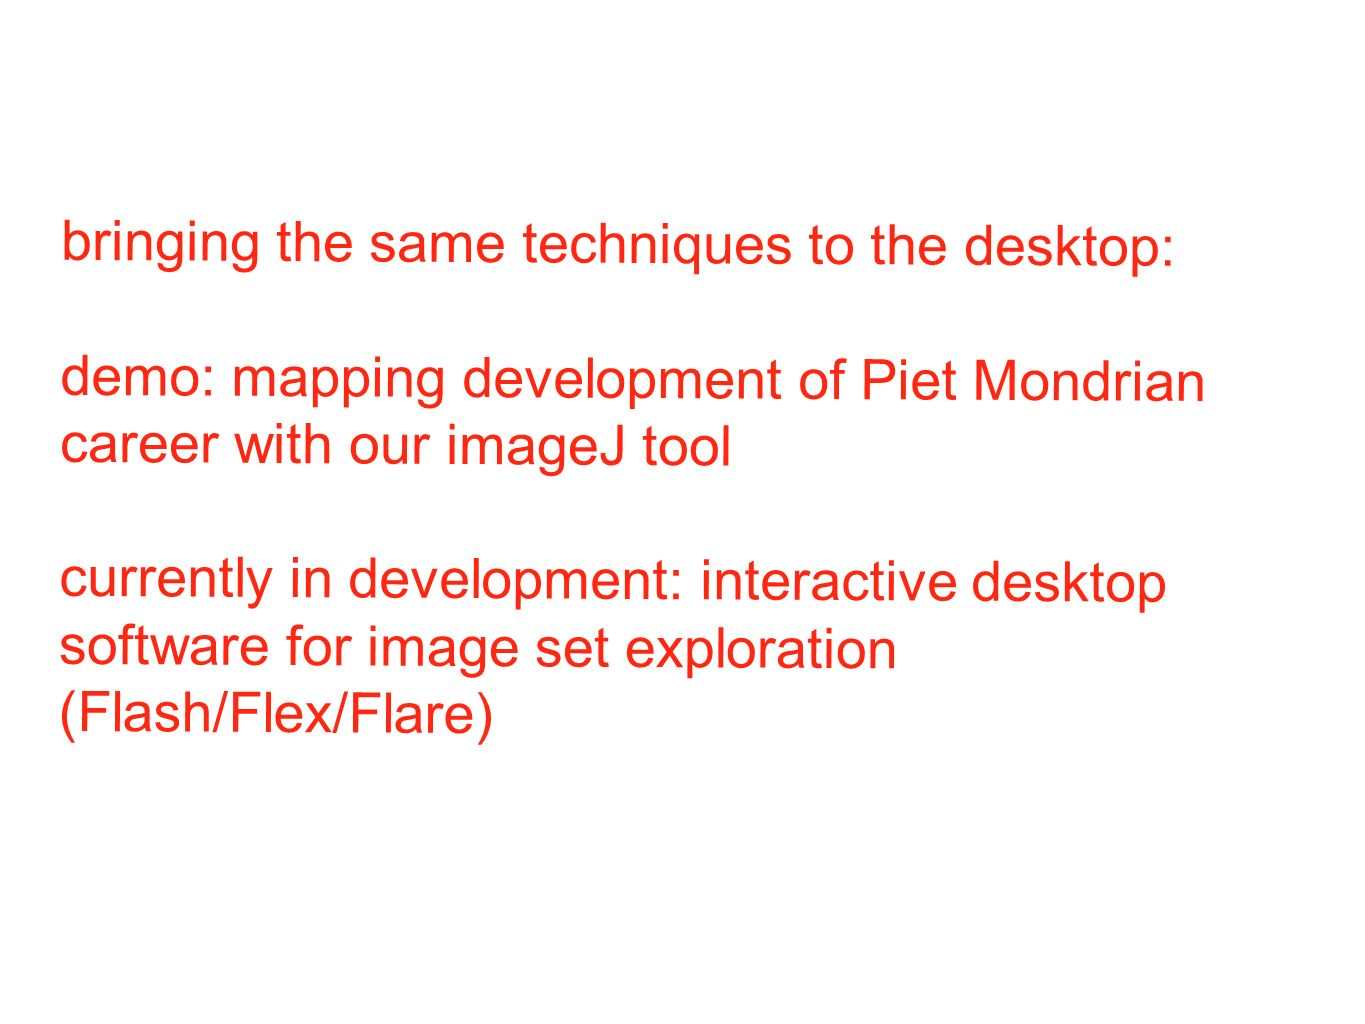 bringing the same techniques to the desktop: demo: mapping development of Piet Mondrian career with our imageJ tool currently in development: interact